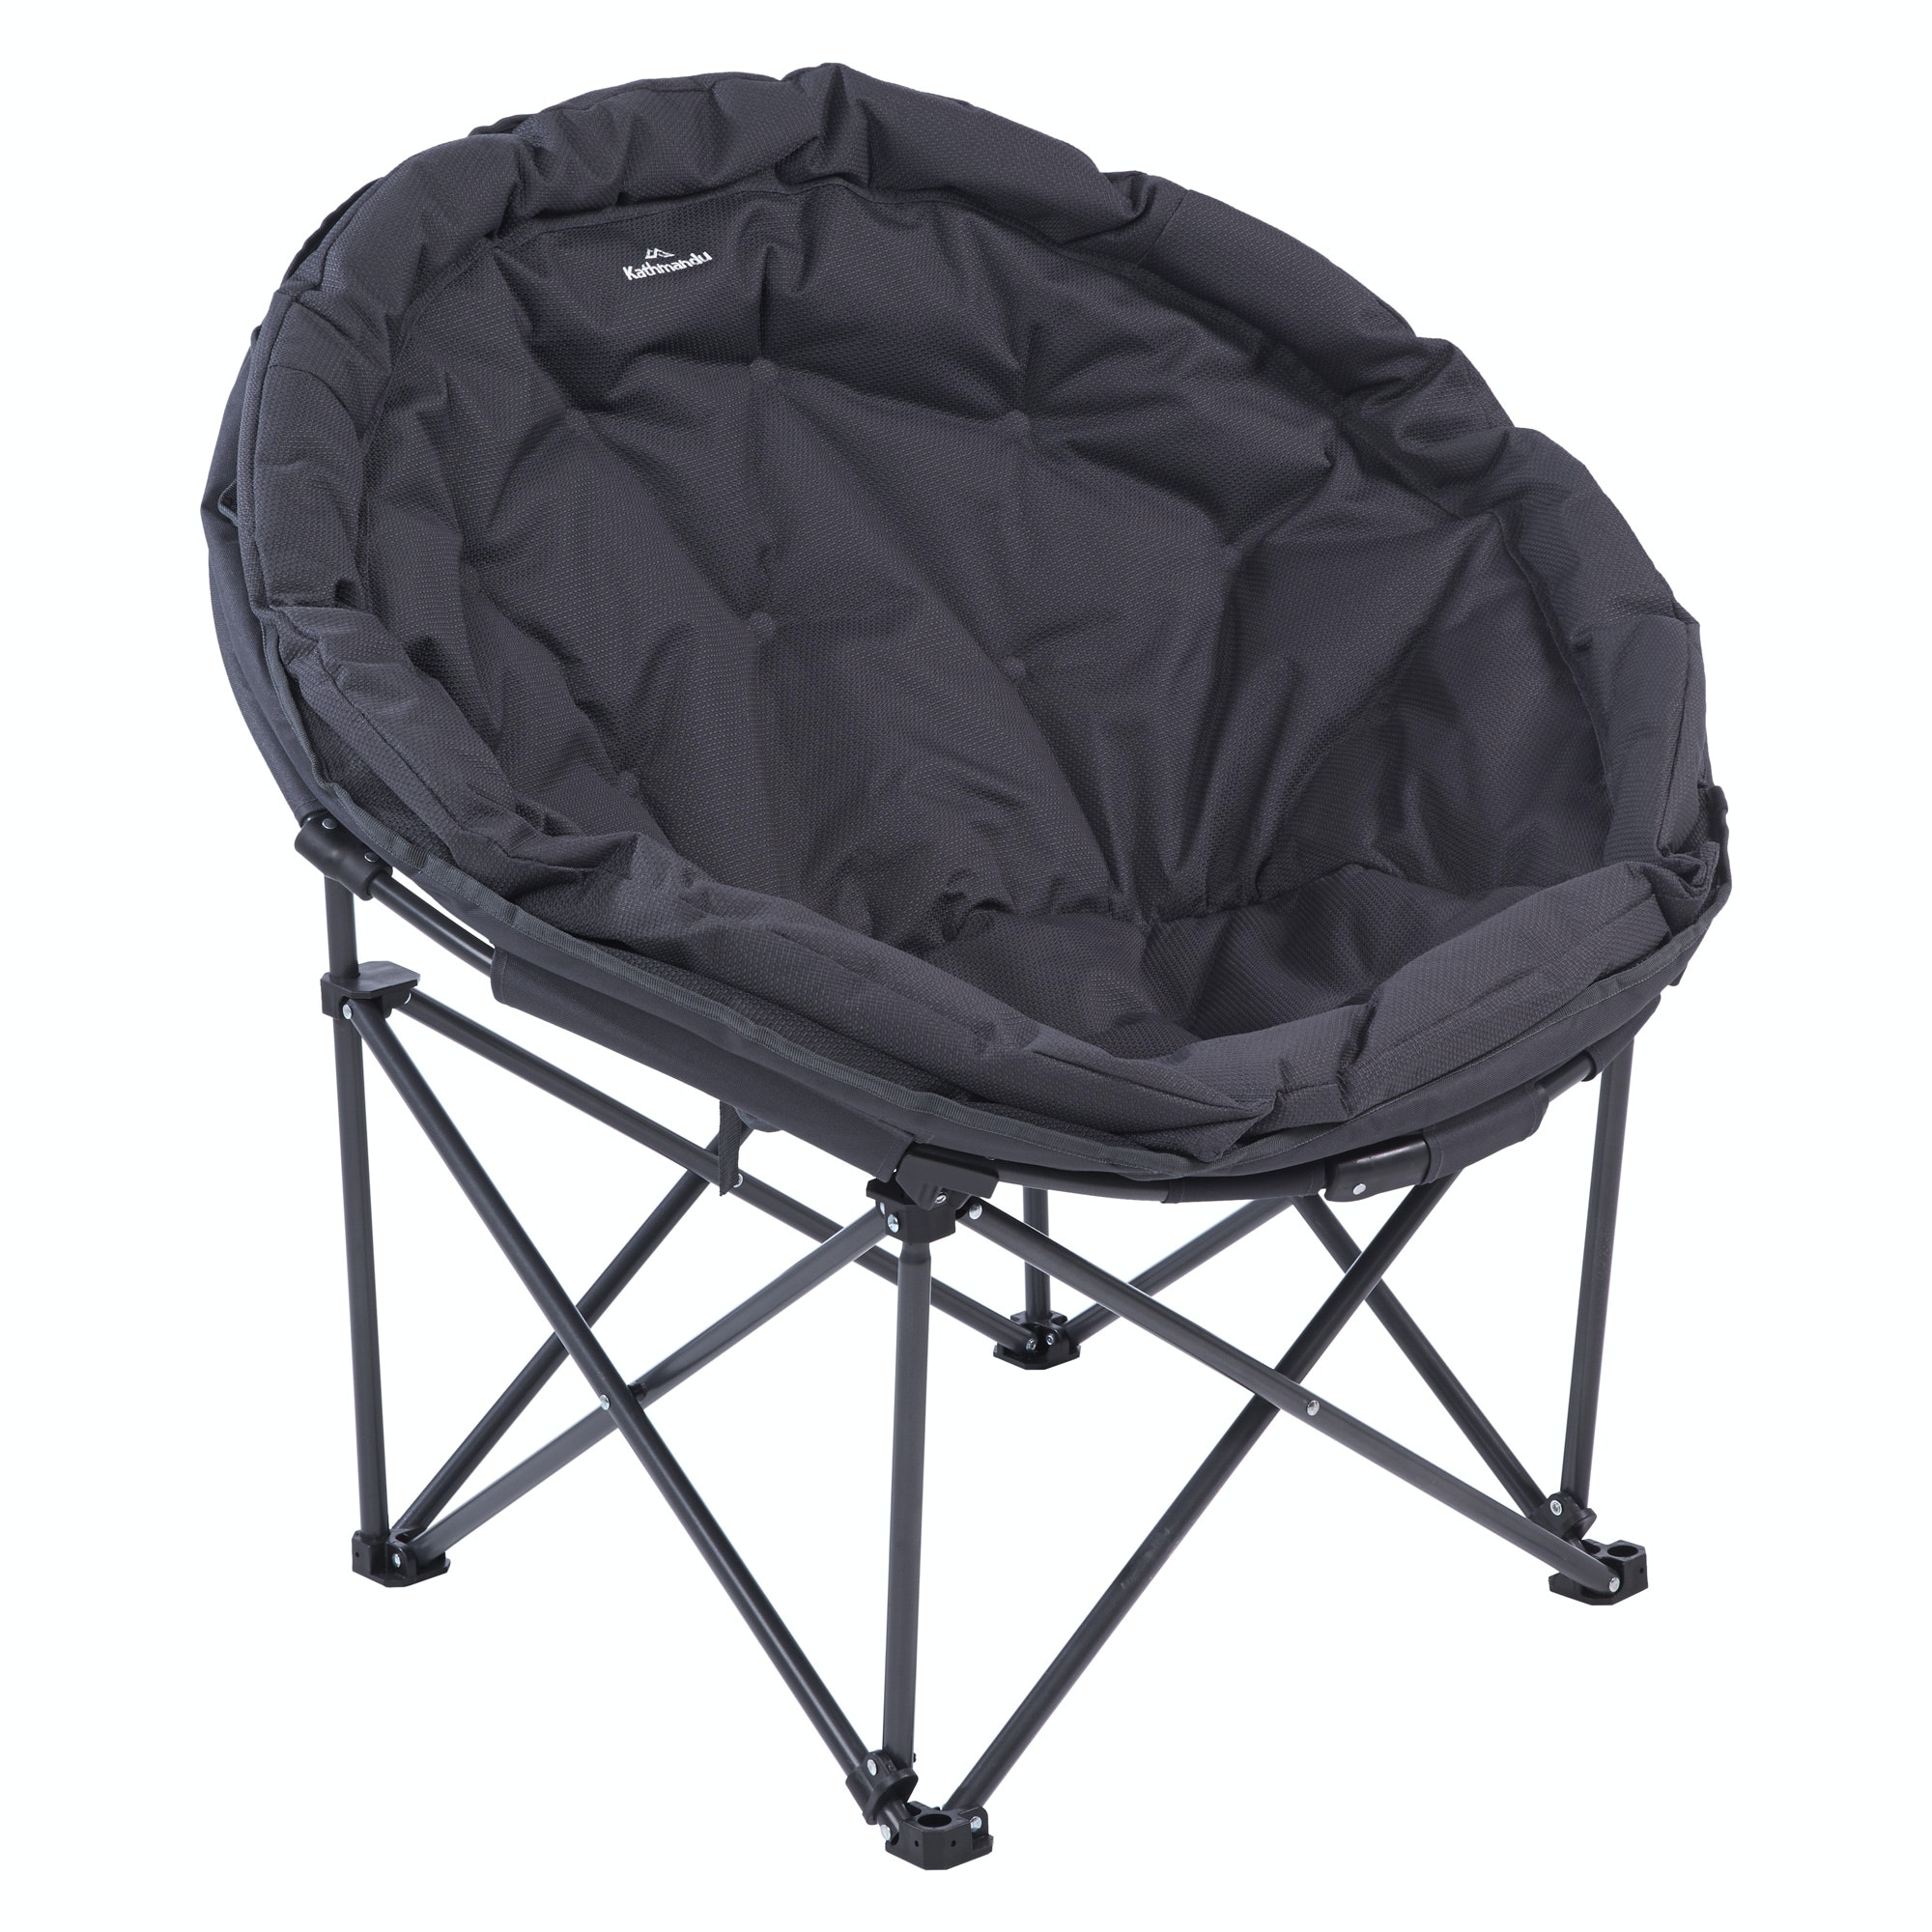 Cabana Chair New Kathmandu Cabana Folding Portable Seat Deluxe Picnic